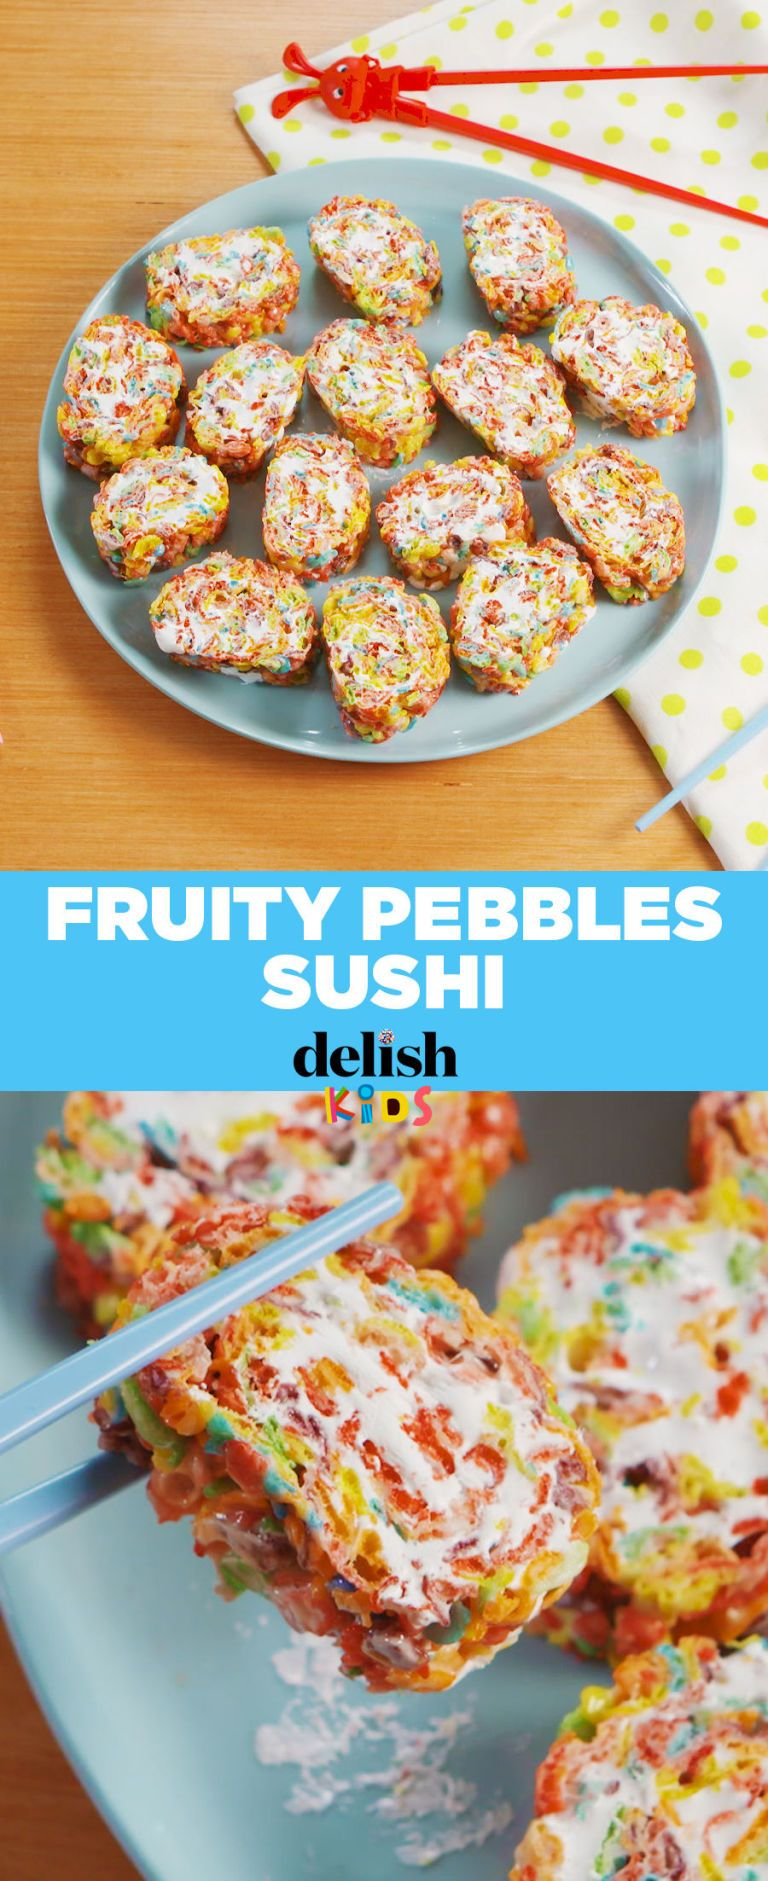 Fruity Pebbles Sushi Is Pure Magic #dessertsushi